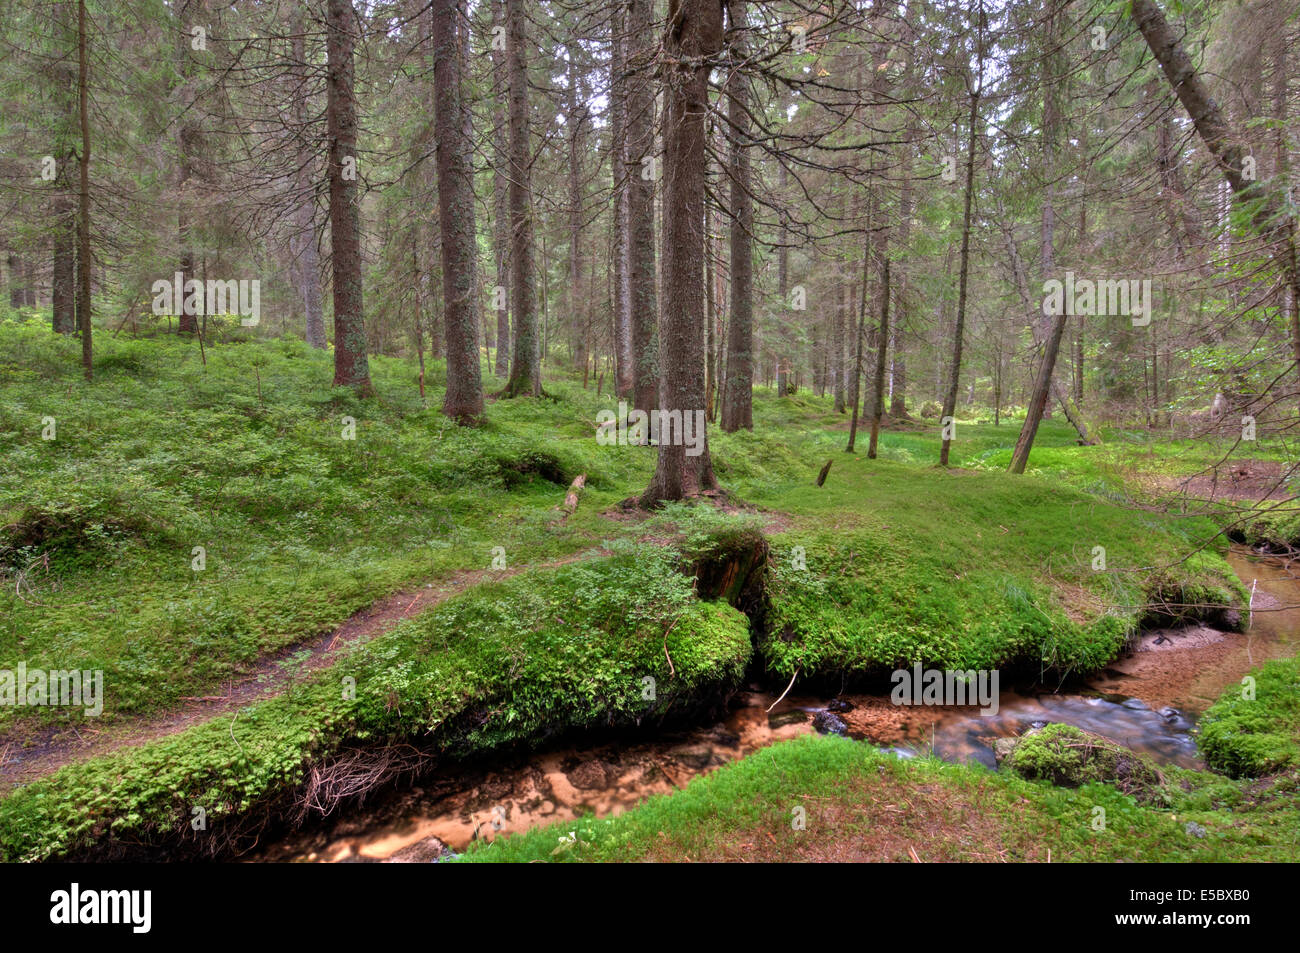 Conifers in a German forest - Stock Image